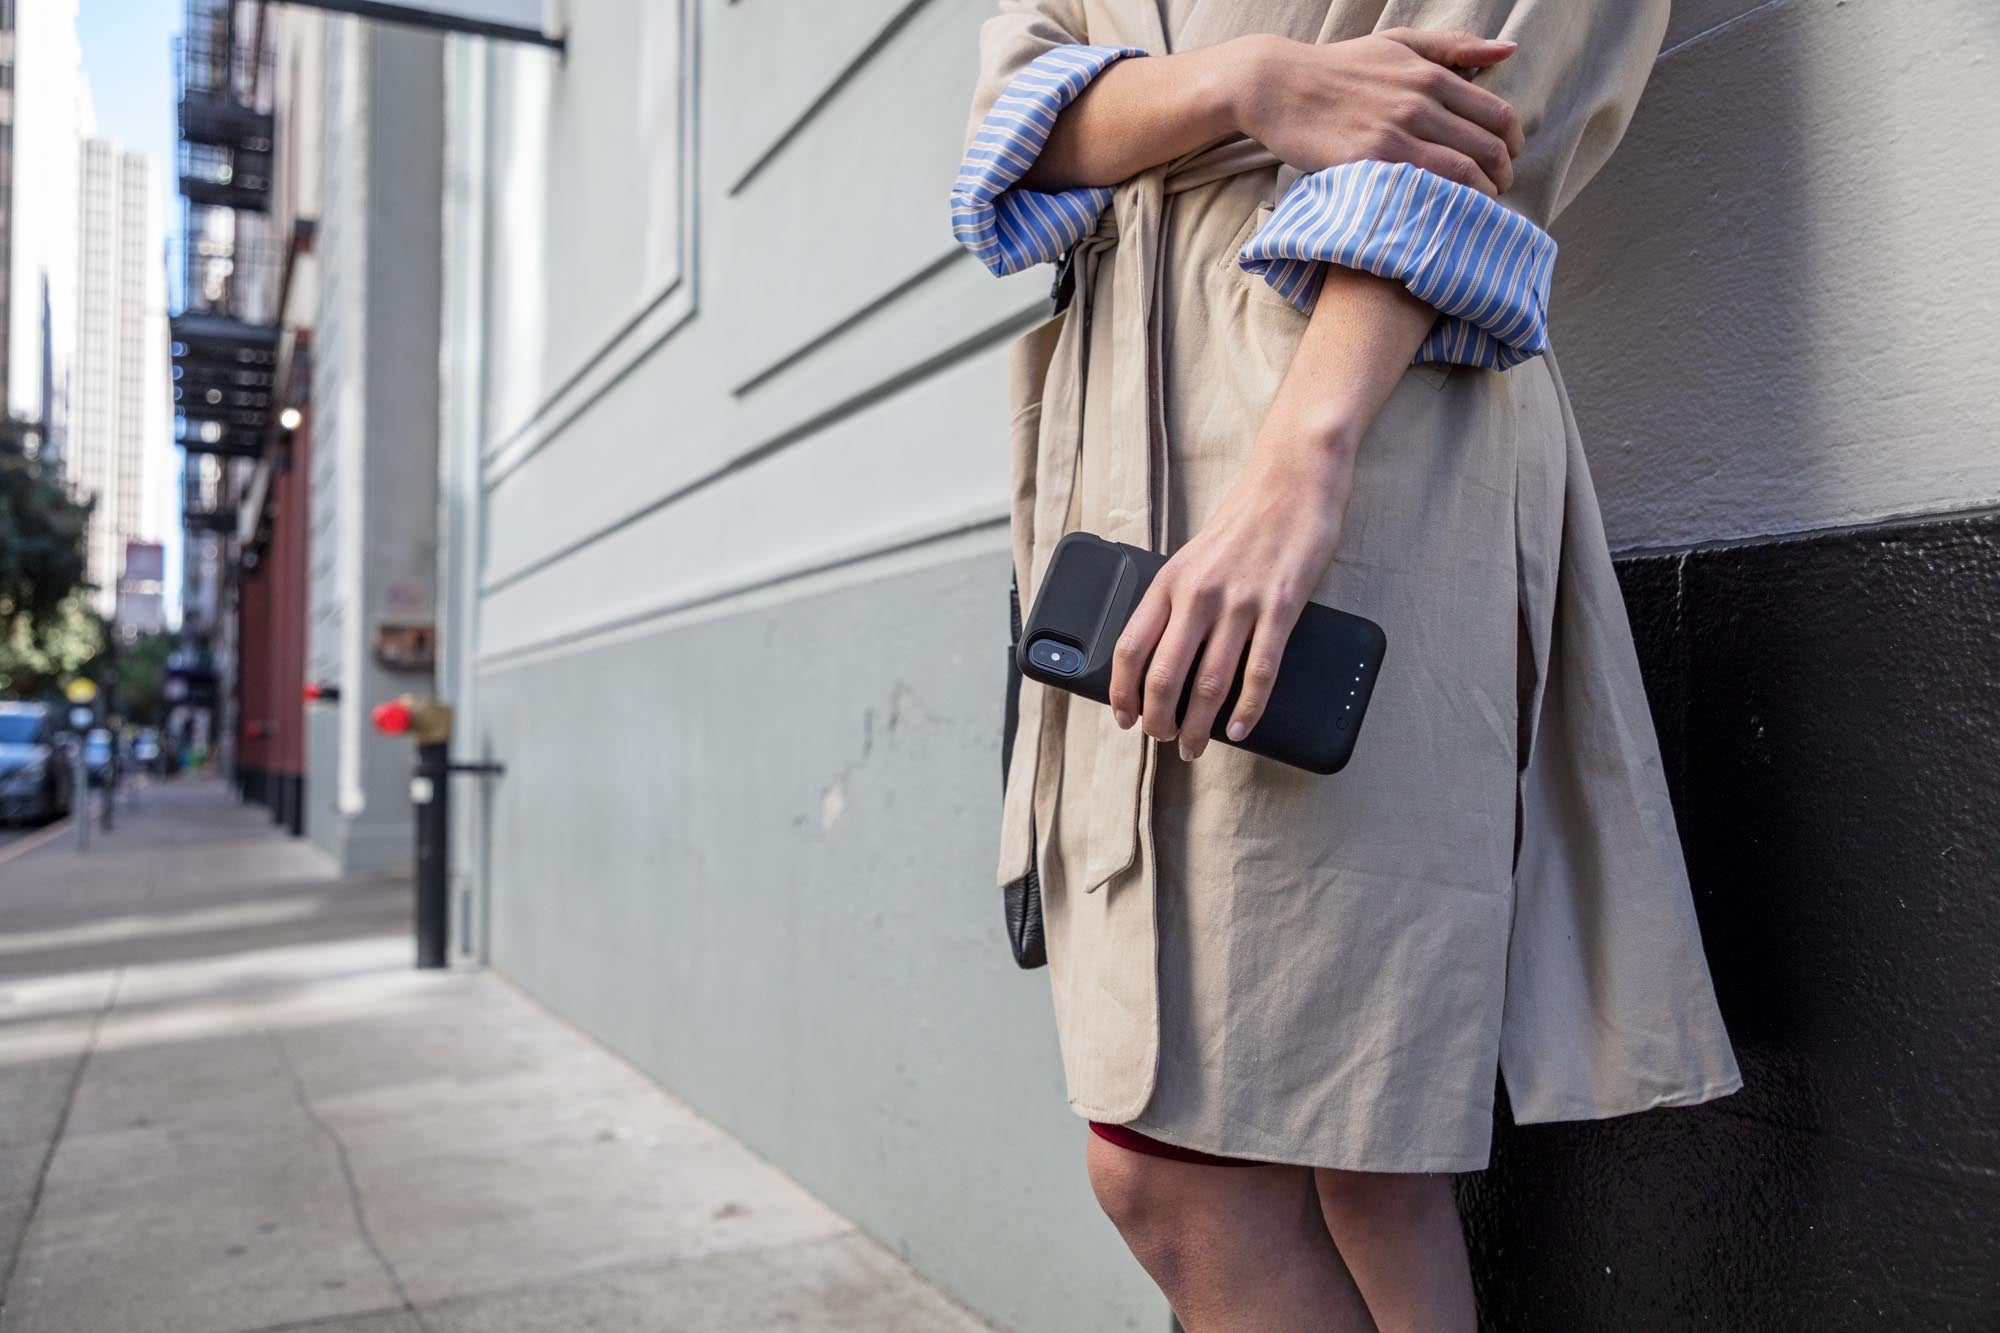 Woman holding her phone while next to a building on a sidewalk